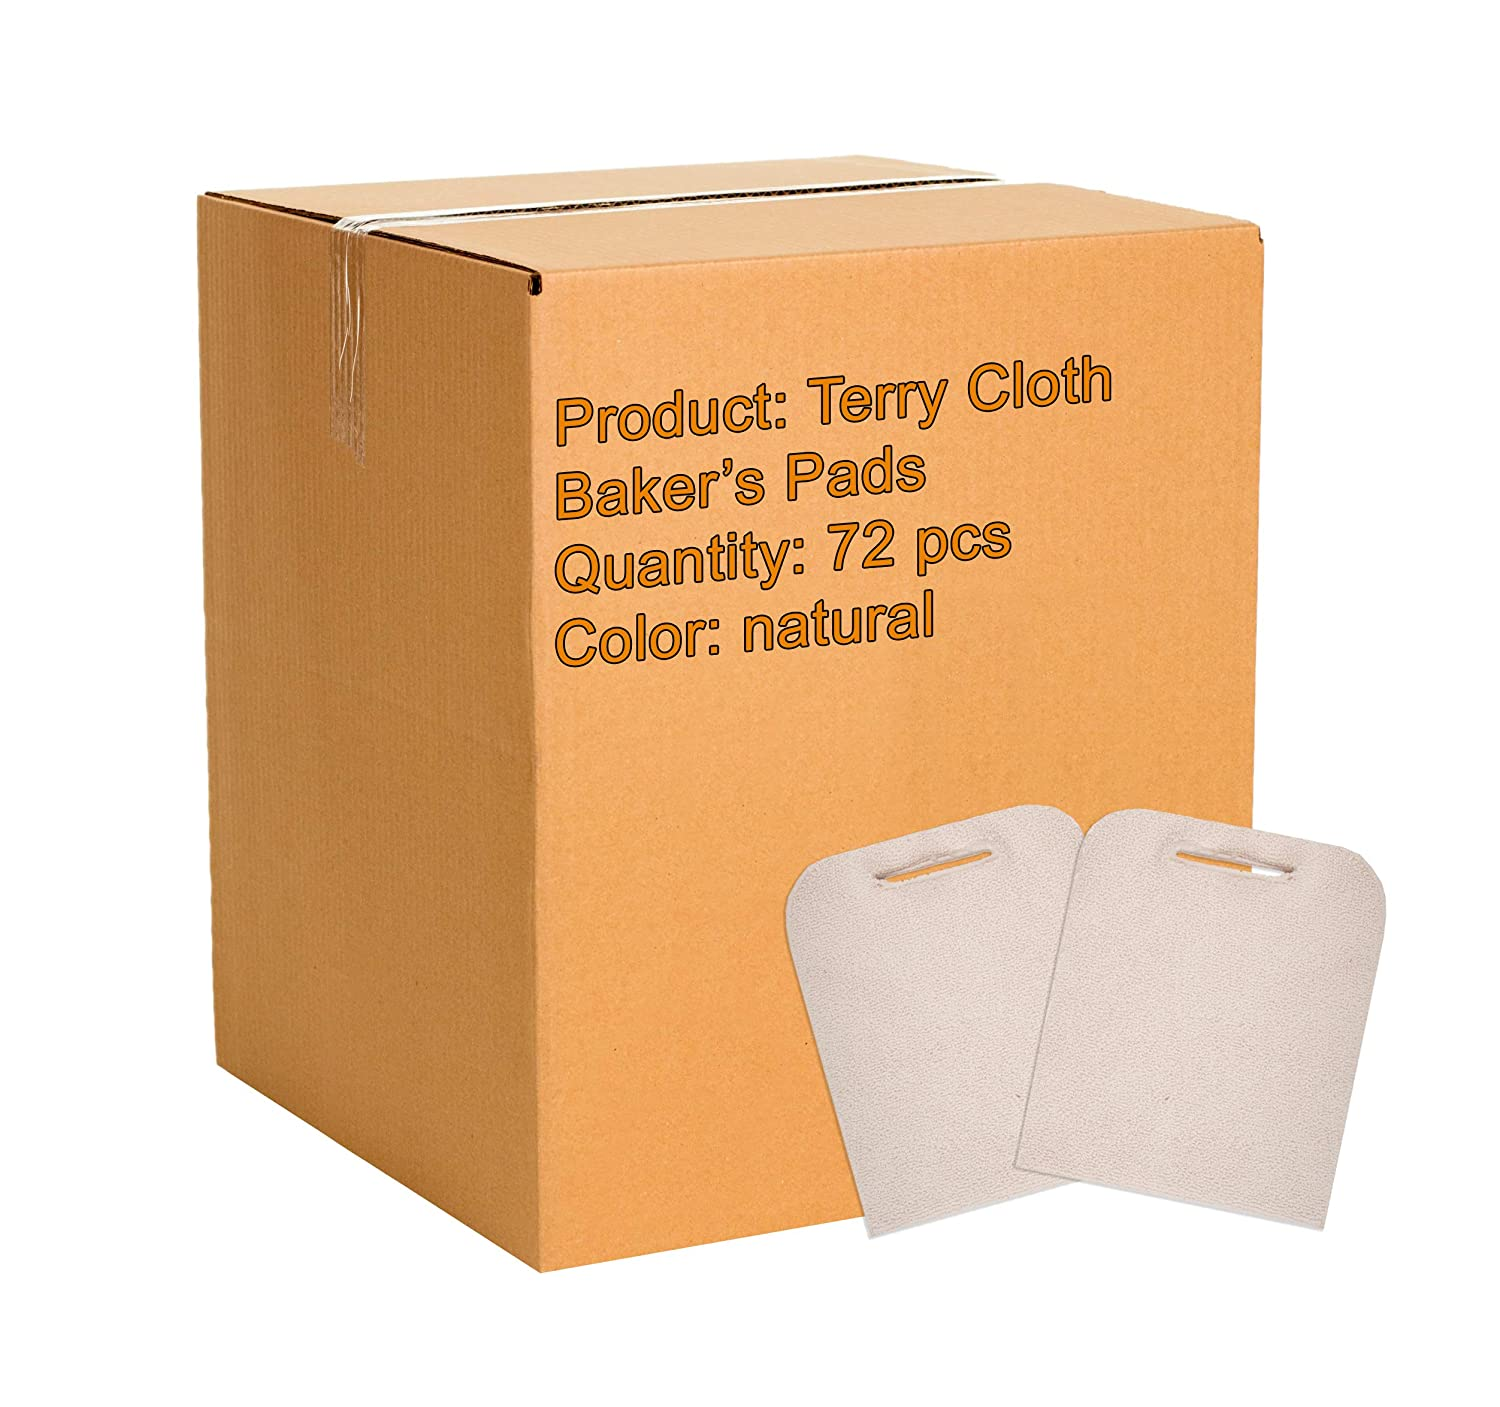 ABC 72 Pack Terry Cloth Baker's Pads. Industrial Oven Pads for Heat Protection. Pot Holders with Hand Hole. Heat Resistant Knitted Pads for Baking, Cooking Needs. Natural Color. One Size fits All.